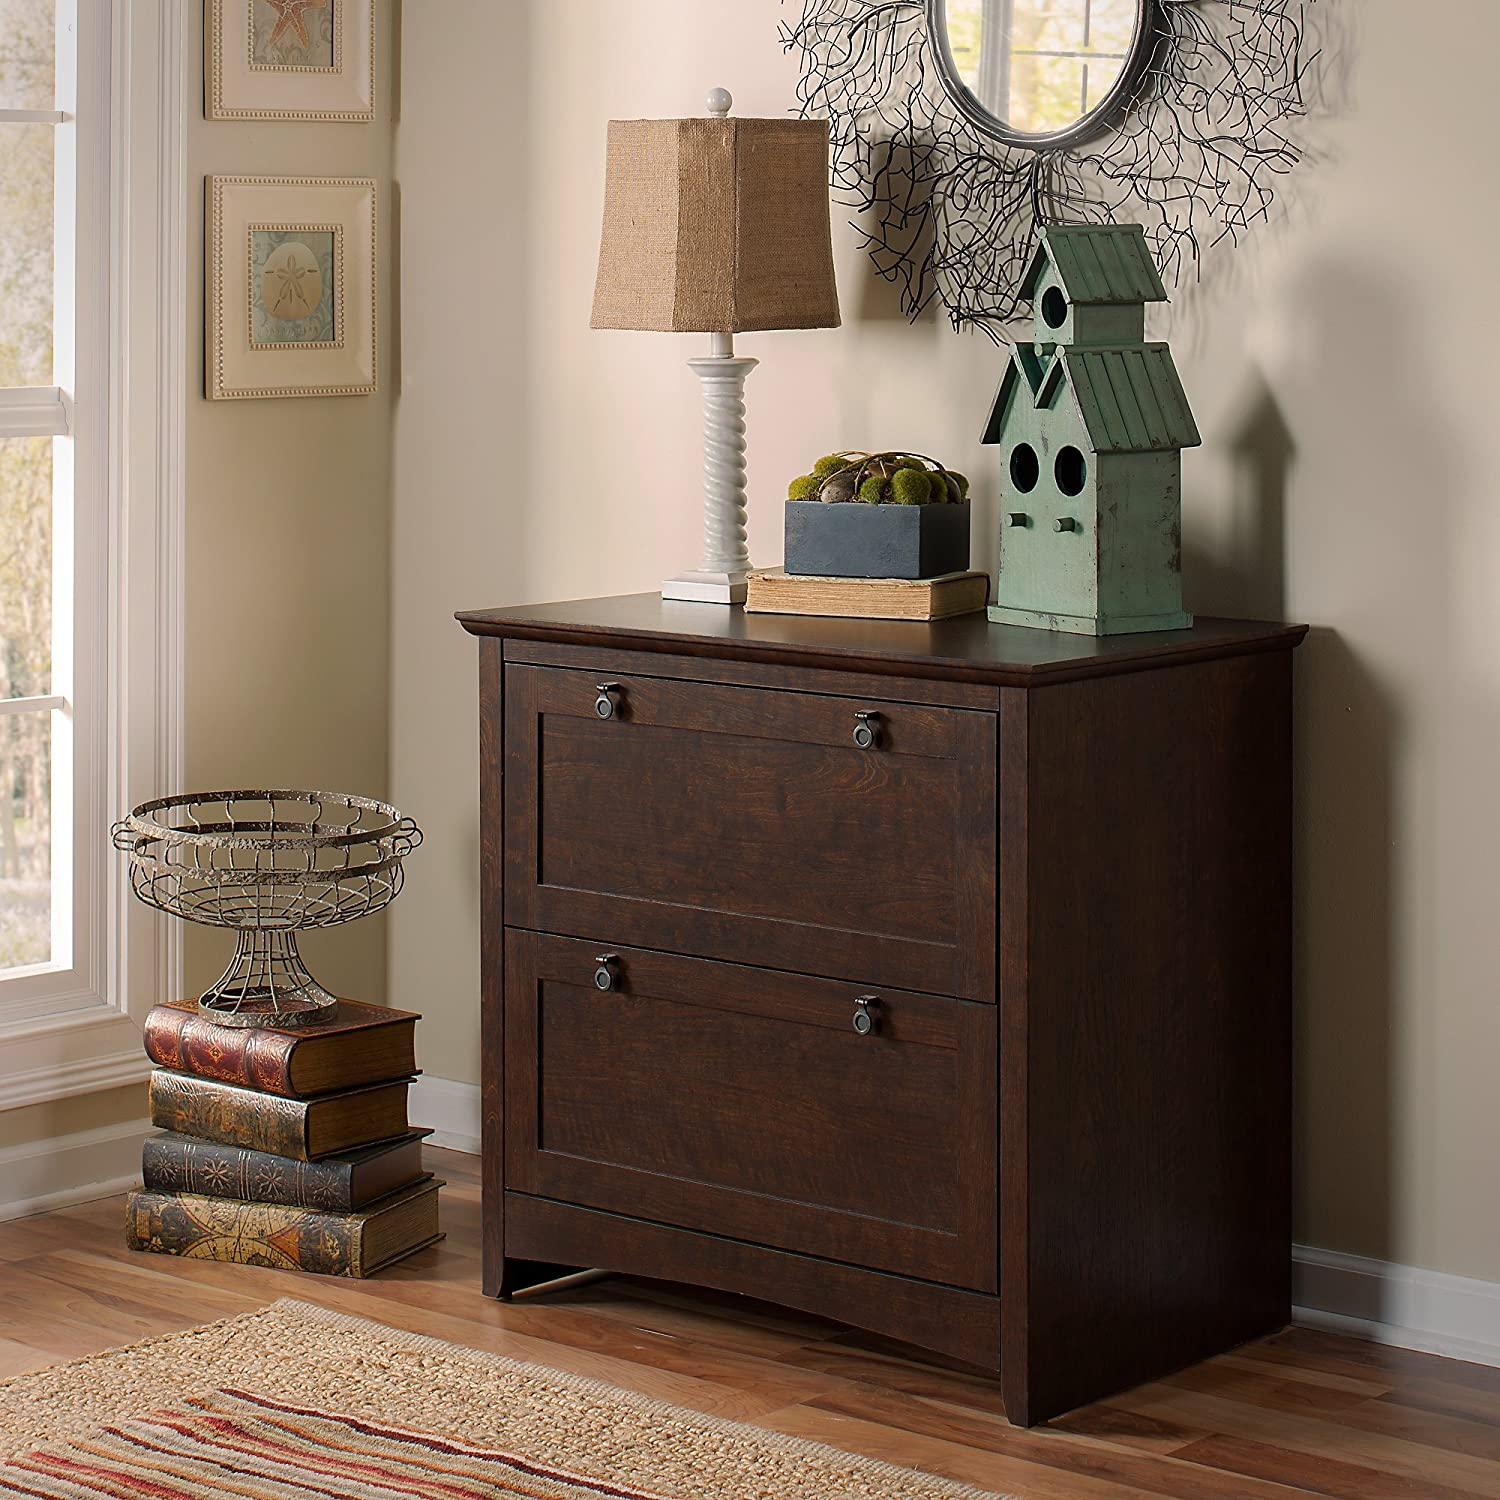 Bush Furniture Buena Vista Small Storage Cabinet with Doors in Madison Cherry